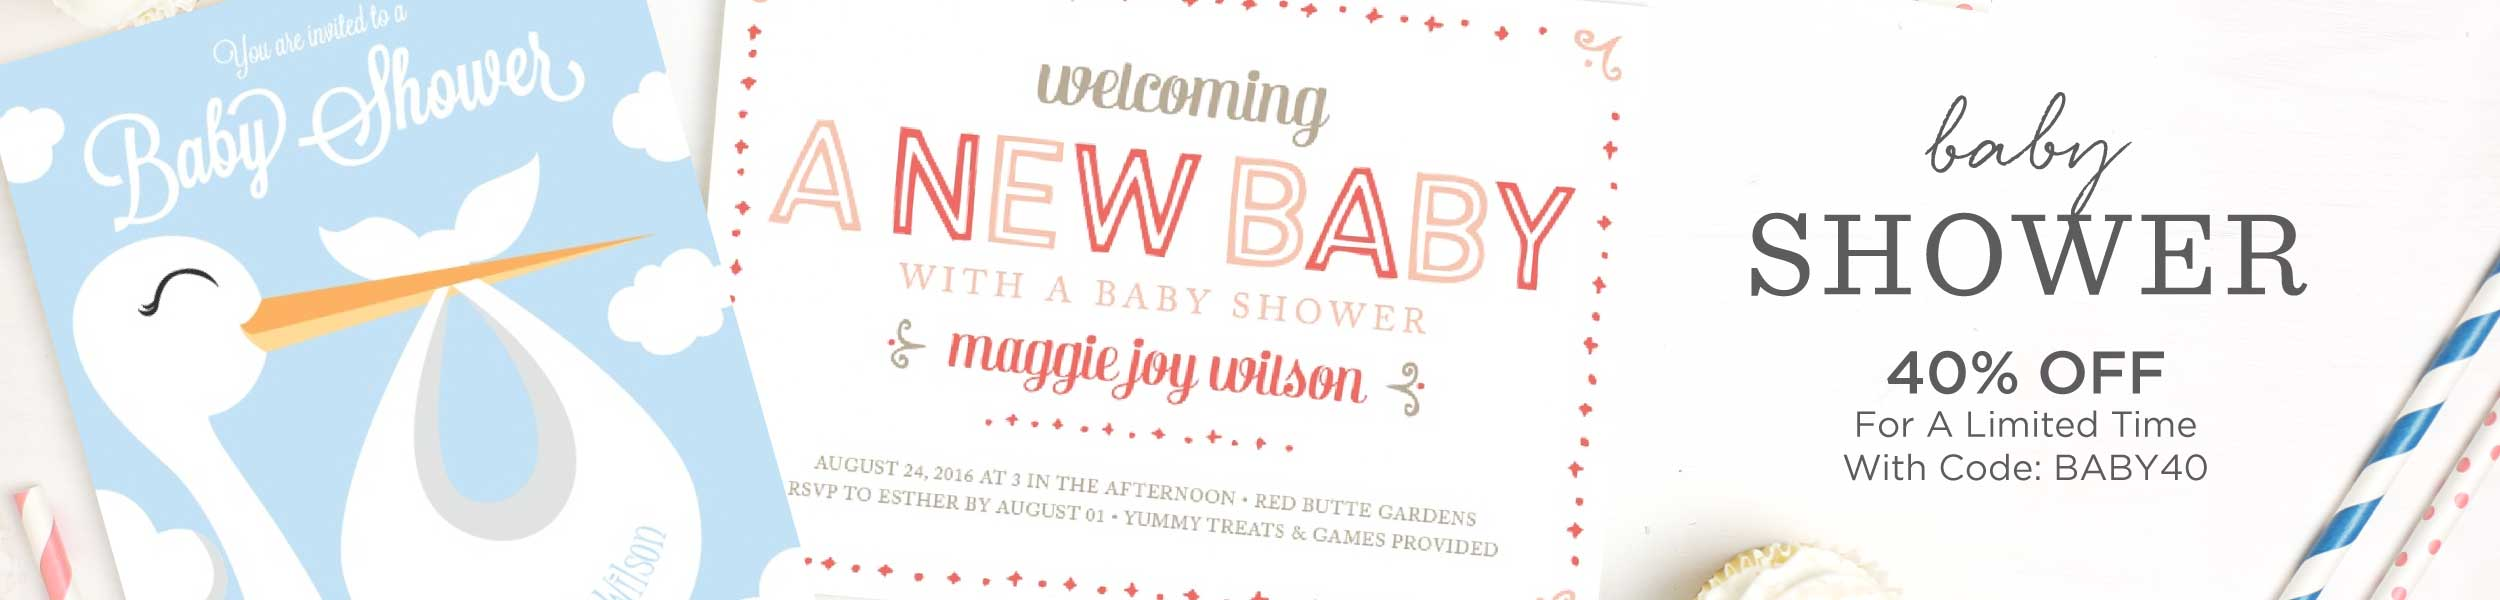 Full Size of Baby Shower:63+ Delightful Cheap Baby Shower Invitations Image Inspirations Cheap Baby Shower Invitations Or Baby Shower Poems With Baby Shower Bingo Plus Save The Date Baby Shower Together With Arreglos Para Baby Shower As Well As Baby Shower Party Themes And Baby Shower Wreath